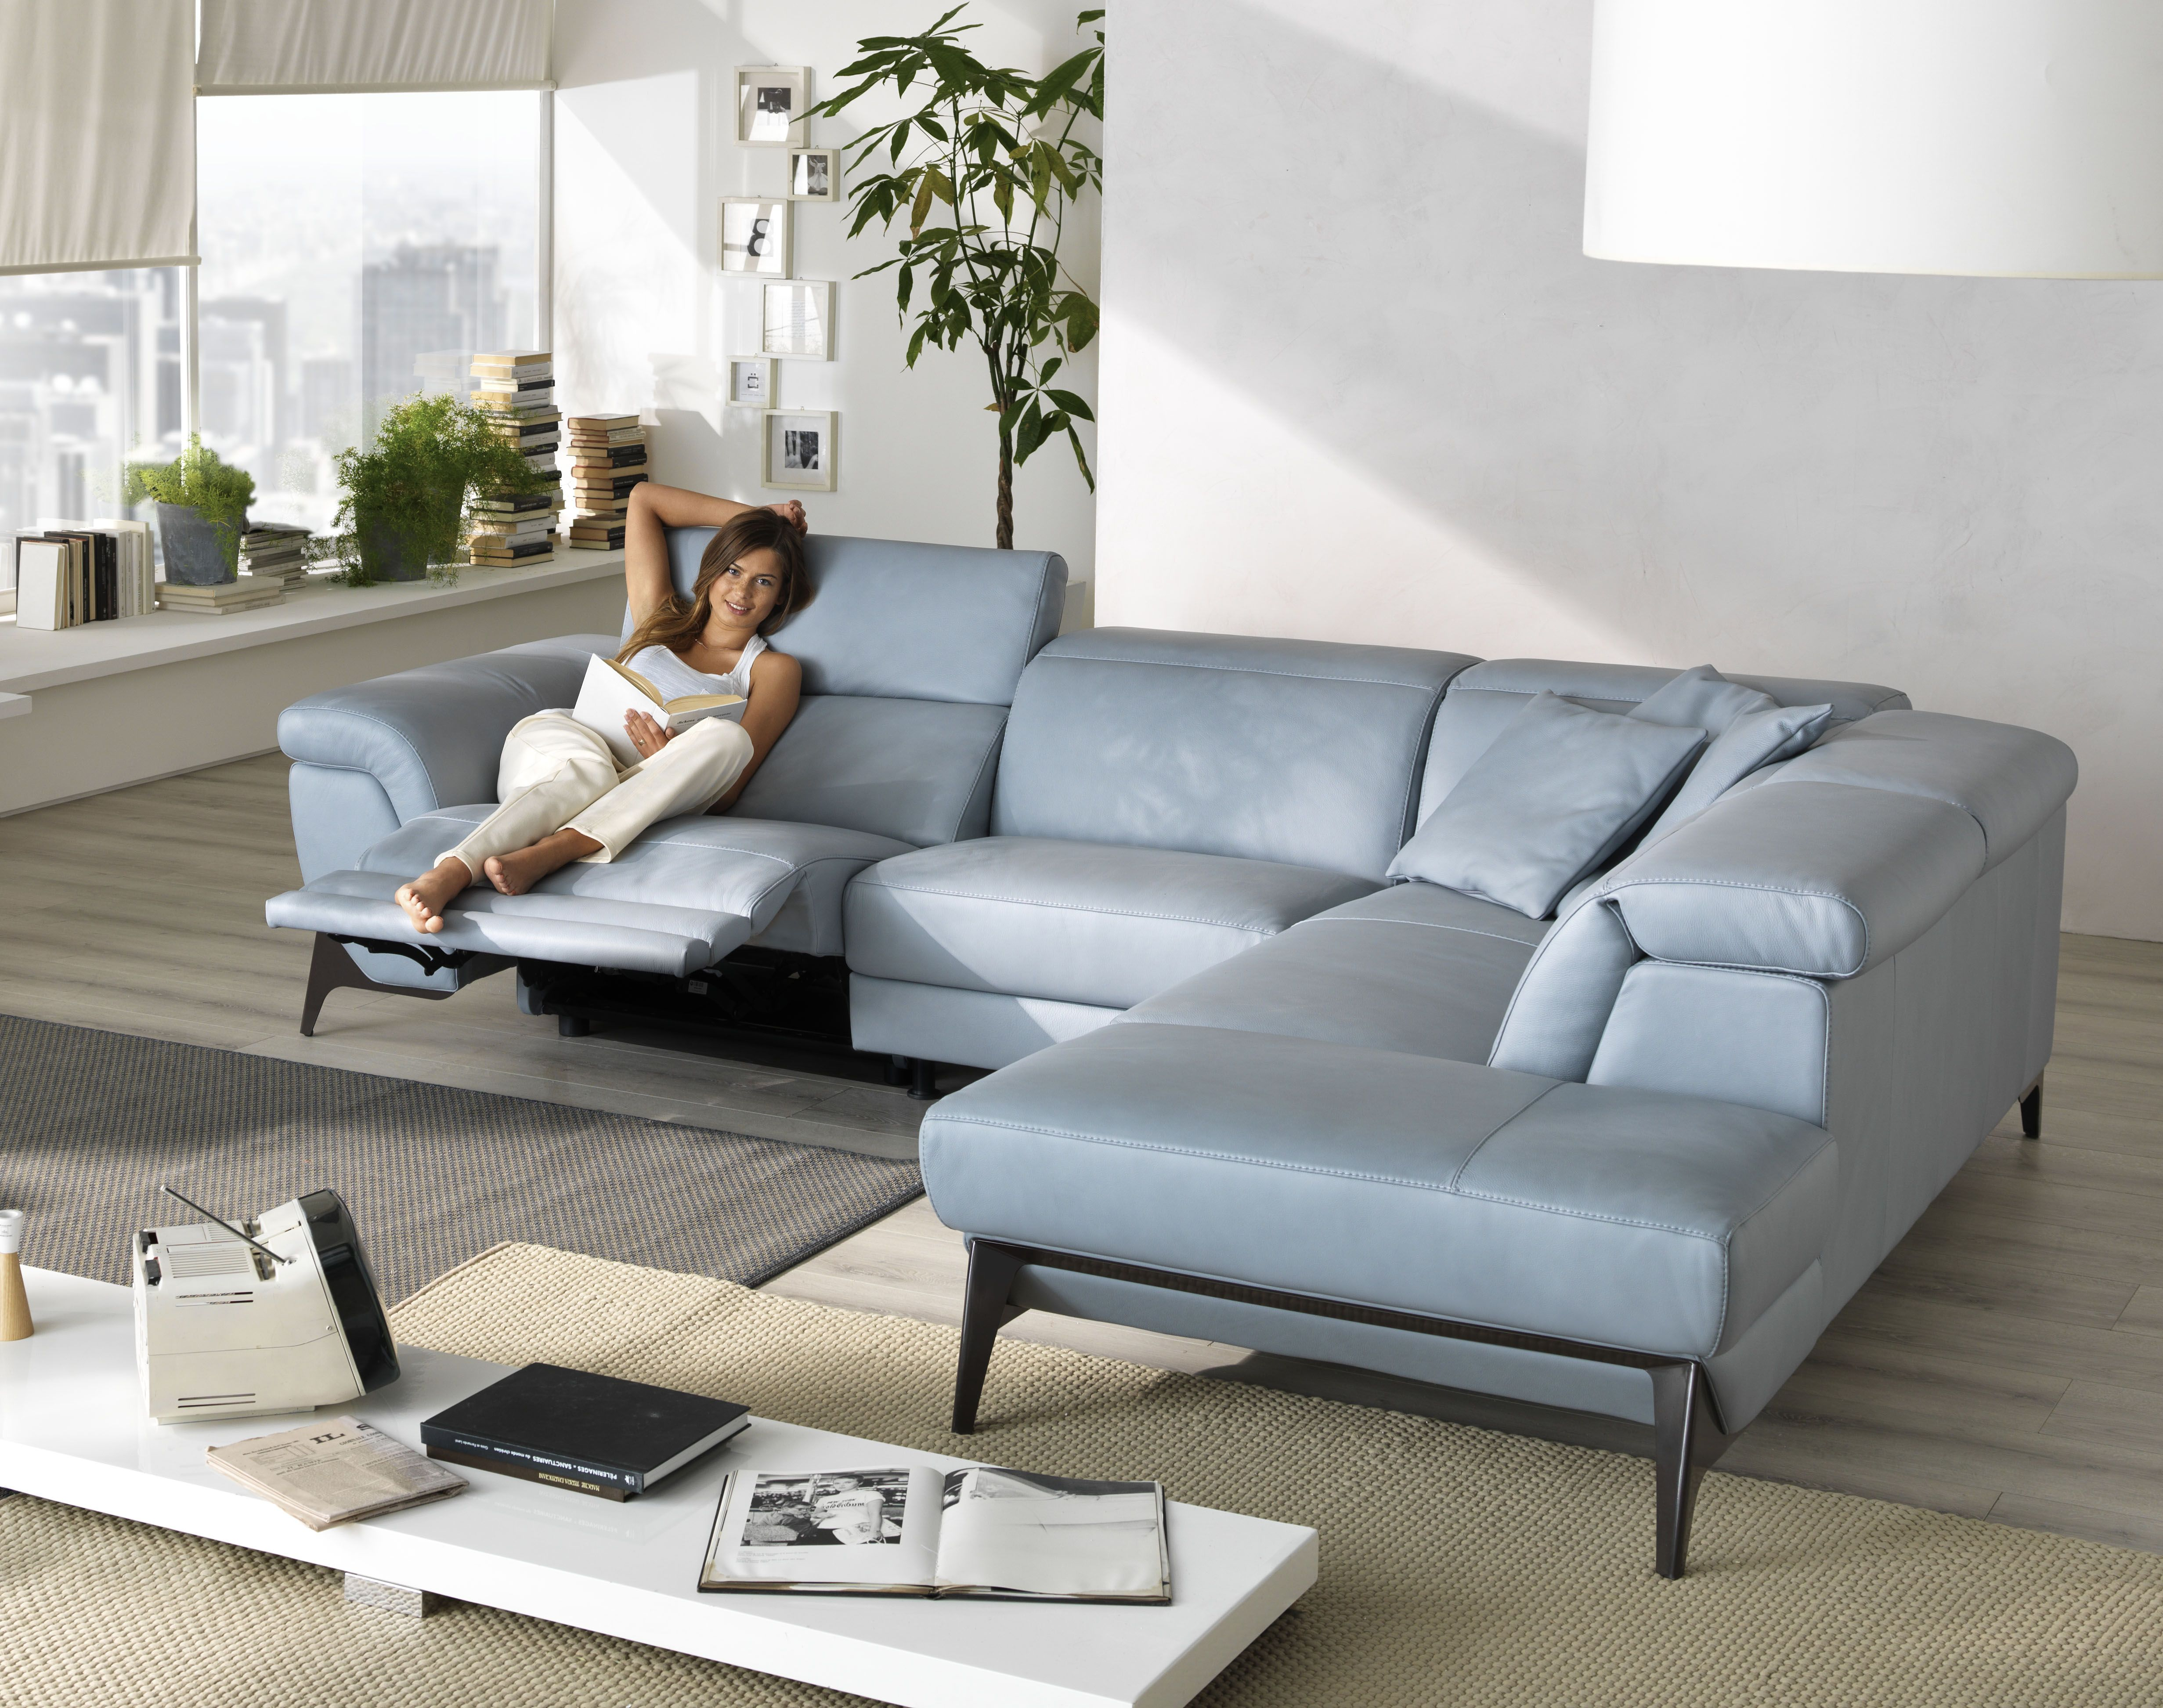 Volo Is A Beautiful Sofa From Studio Iq That Is Suitable For Any Interior Design Setting Find Out More From Studio I Furniture Apartment Seating Italian Sofa